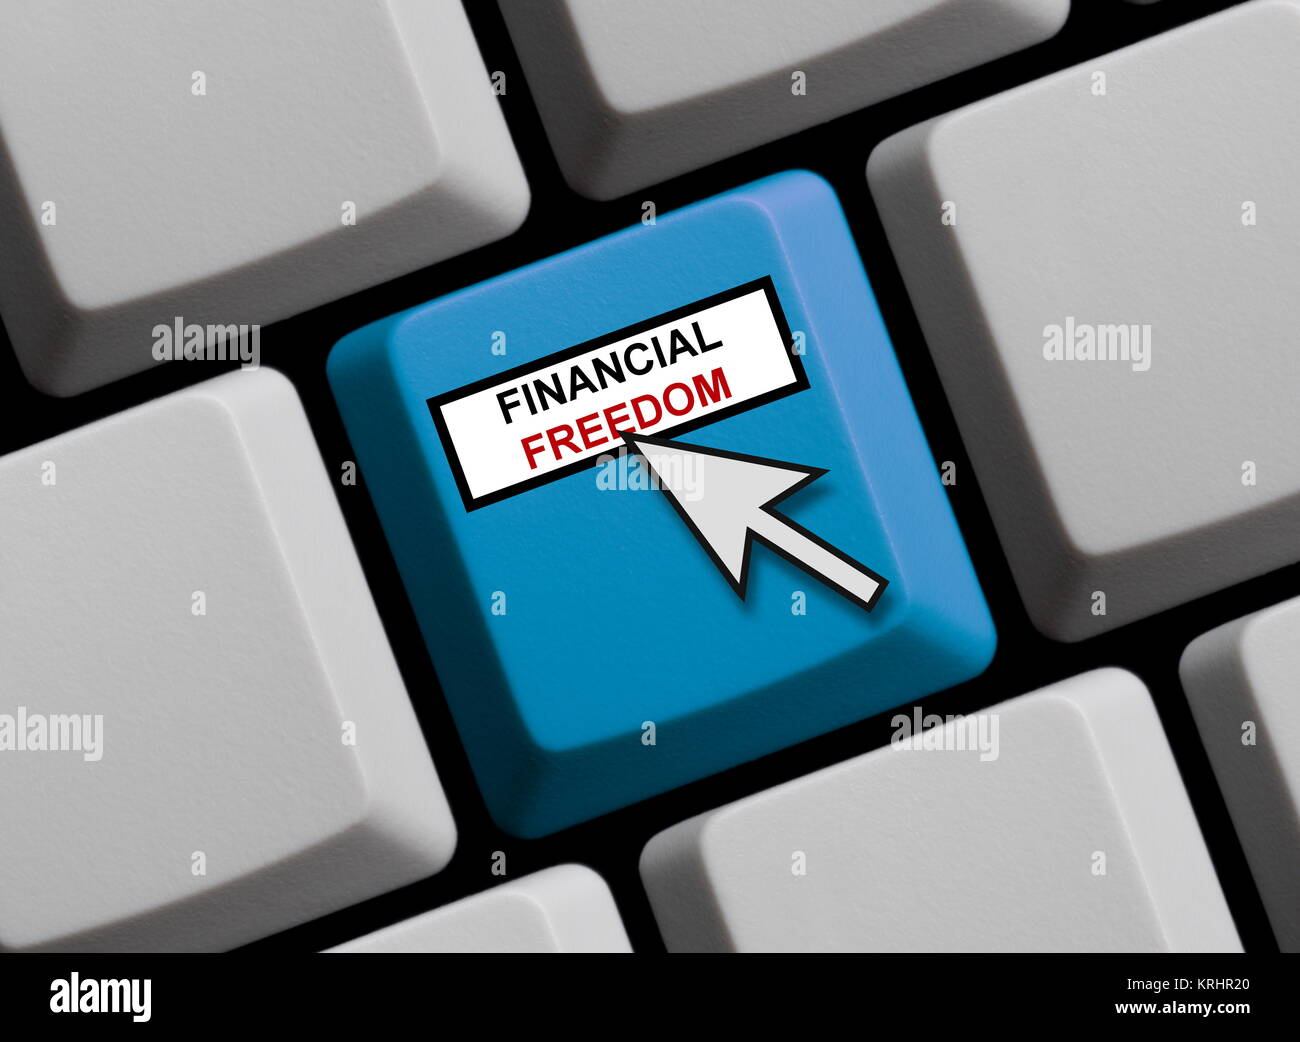 financial freedom online - Stock Image